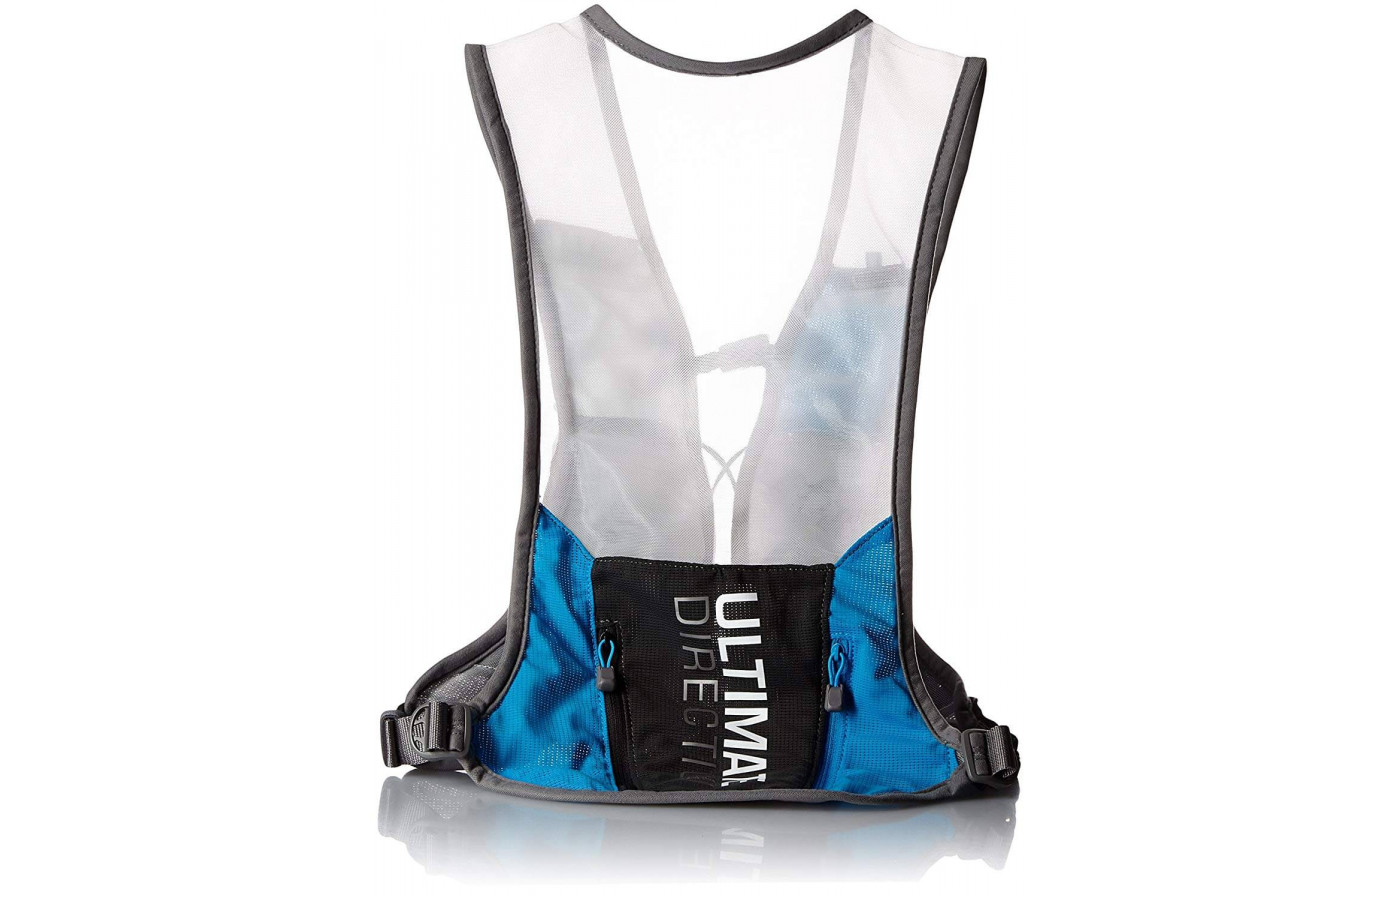 Ultimate Direction To Race Vest 3.0 Back of Vest